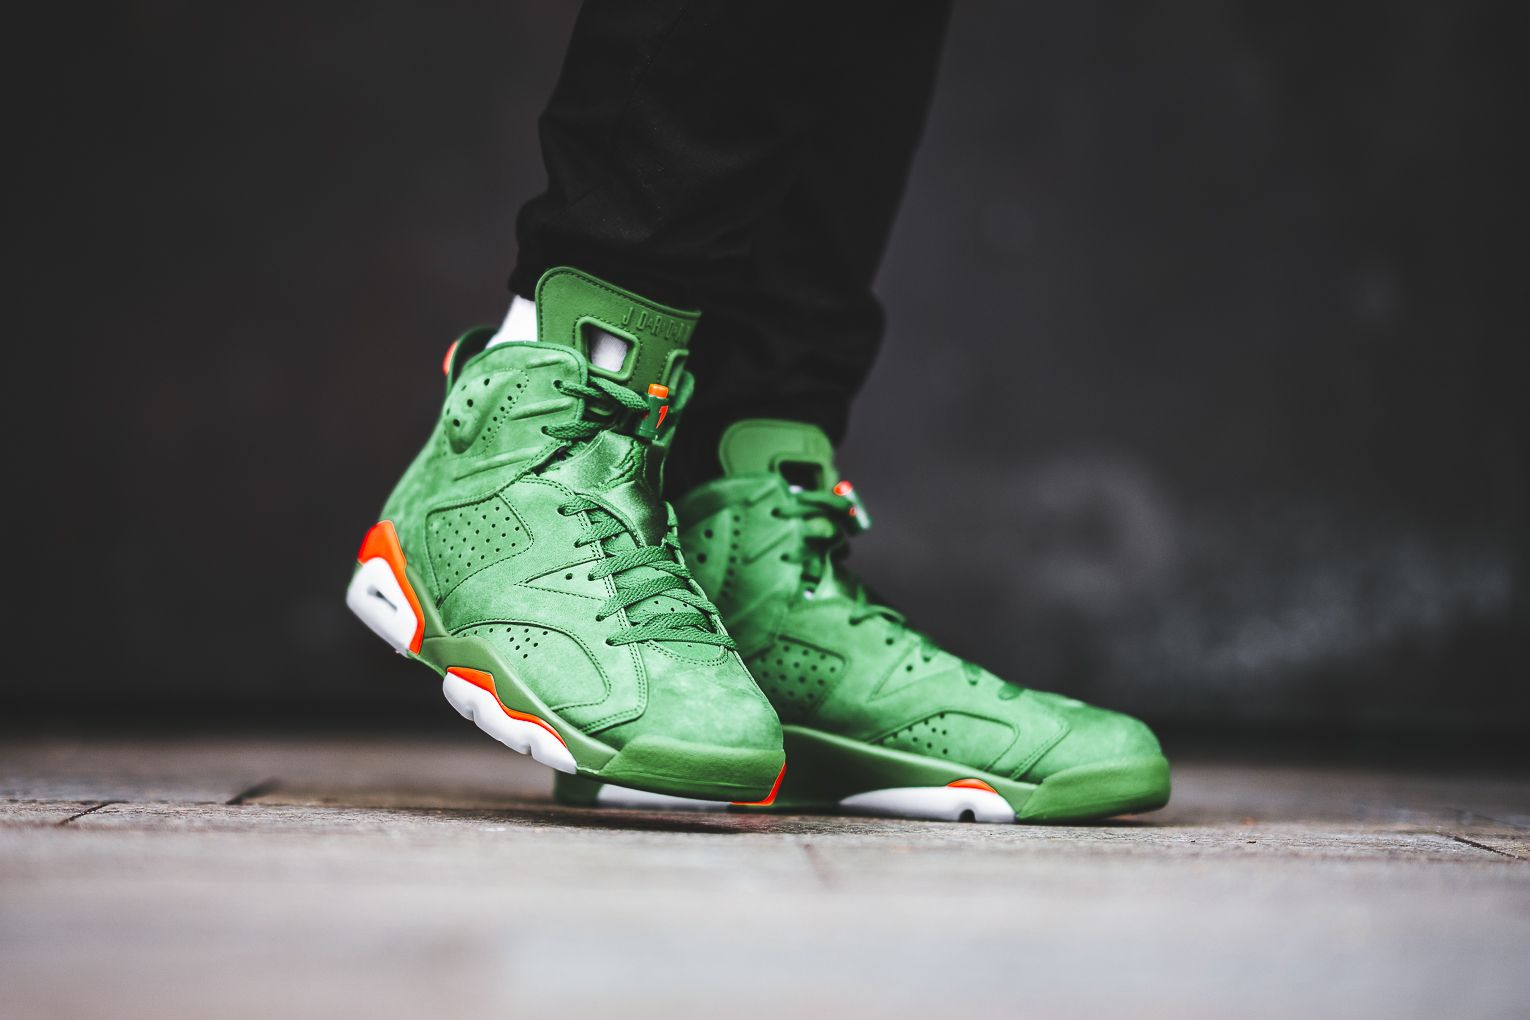 459ad0fedbf1 On-Feet Shots Of The Air Jordan 6 Gatorade Green